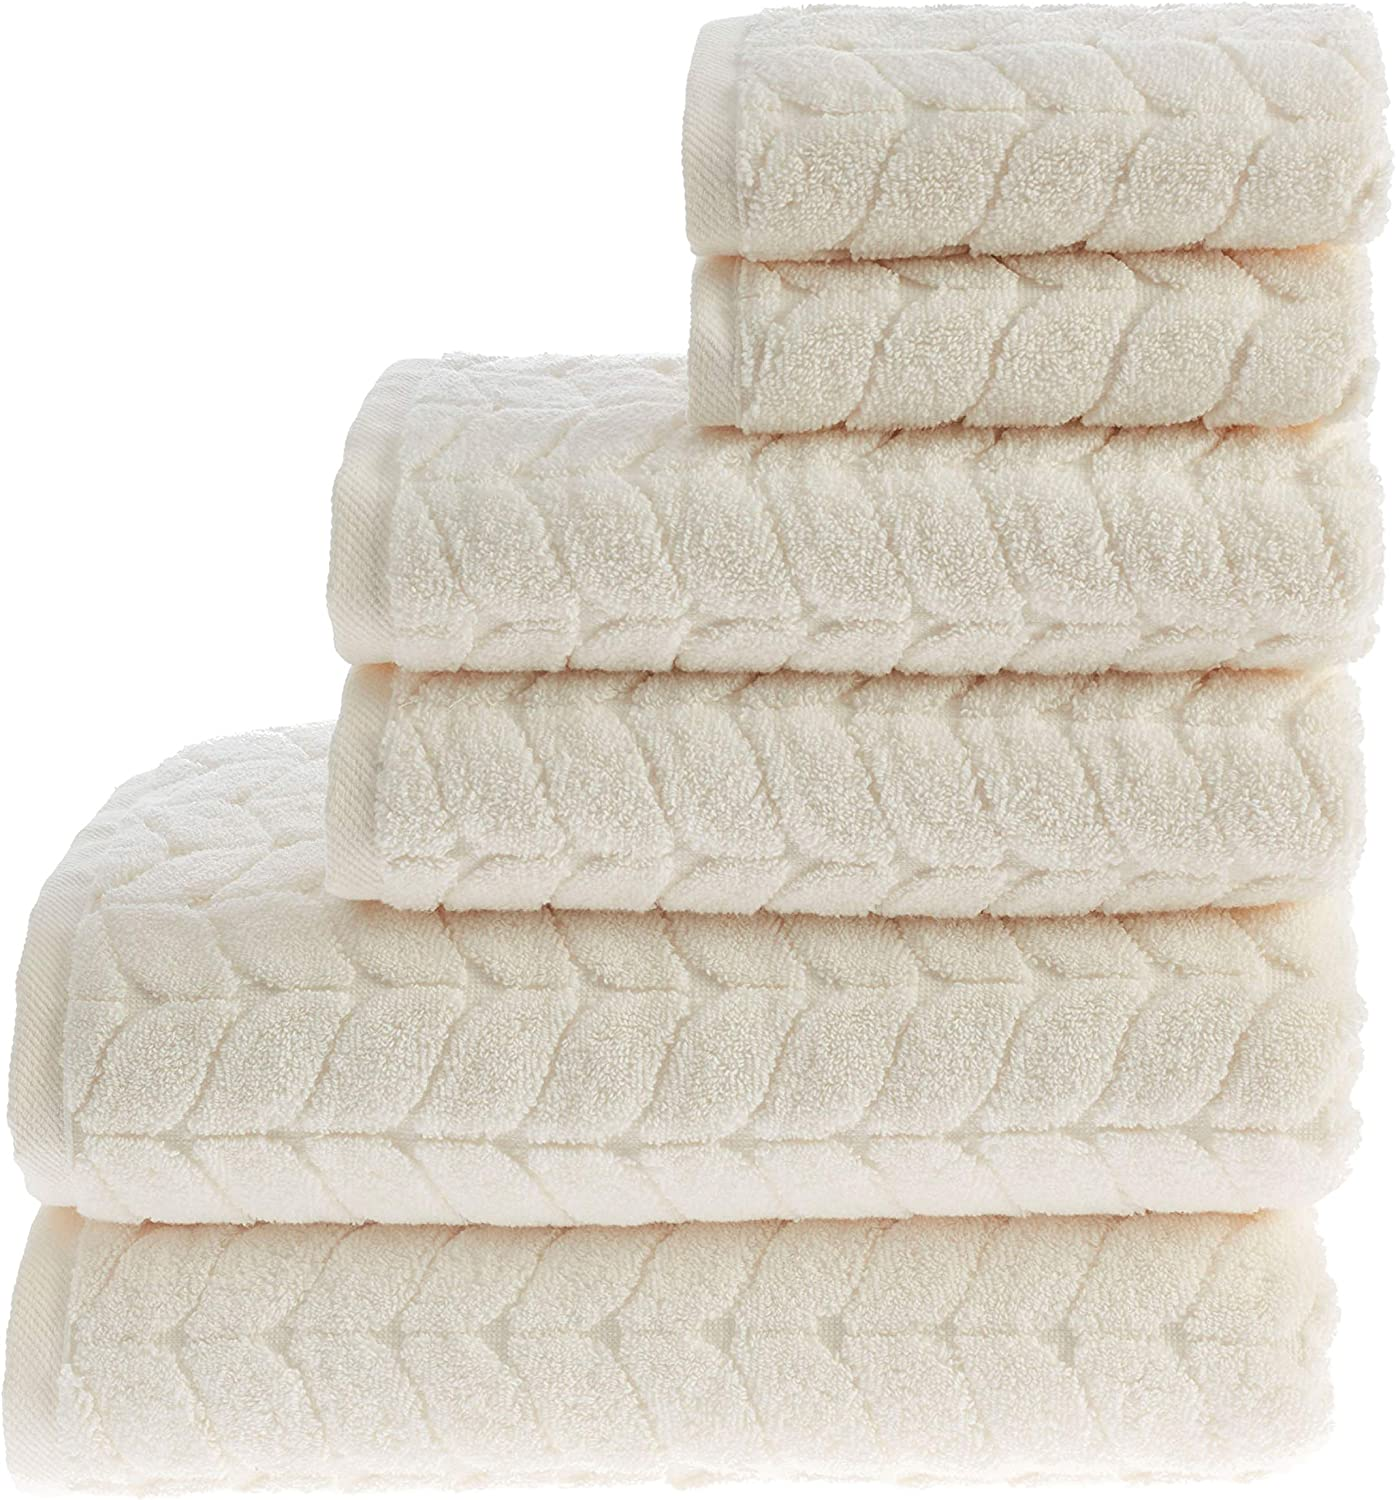 Bagno Milano Turkish Cotton Luxury Softness Spa Hotel Towels, Quick Drying Thick and Plush Bathroom Towels, Made in Turkey (Cream, 6 pcs Towel Set)